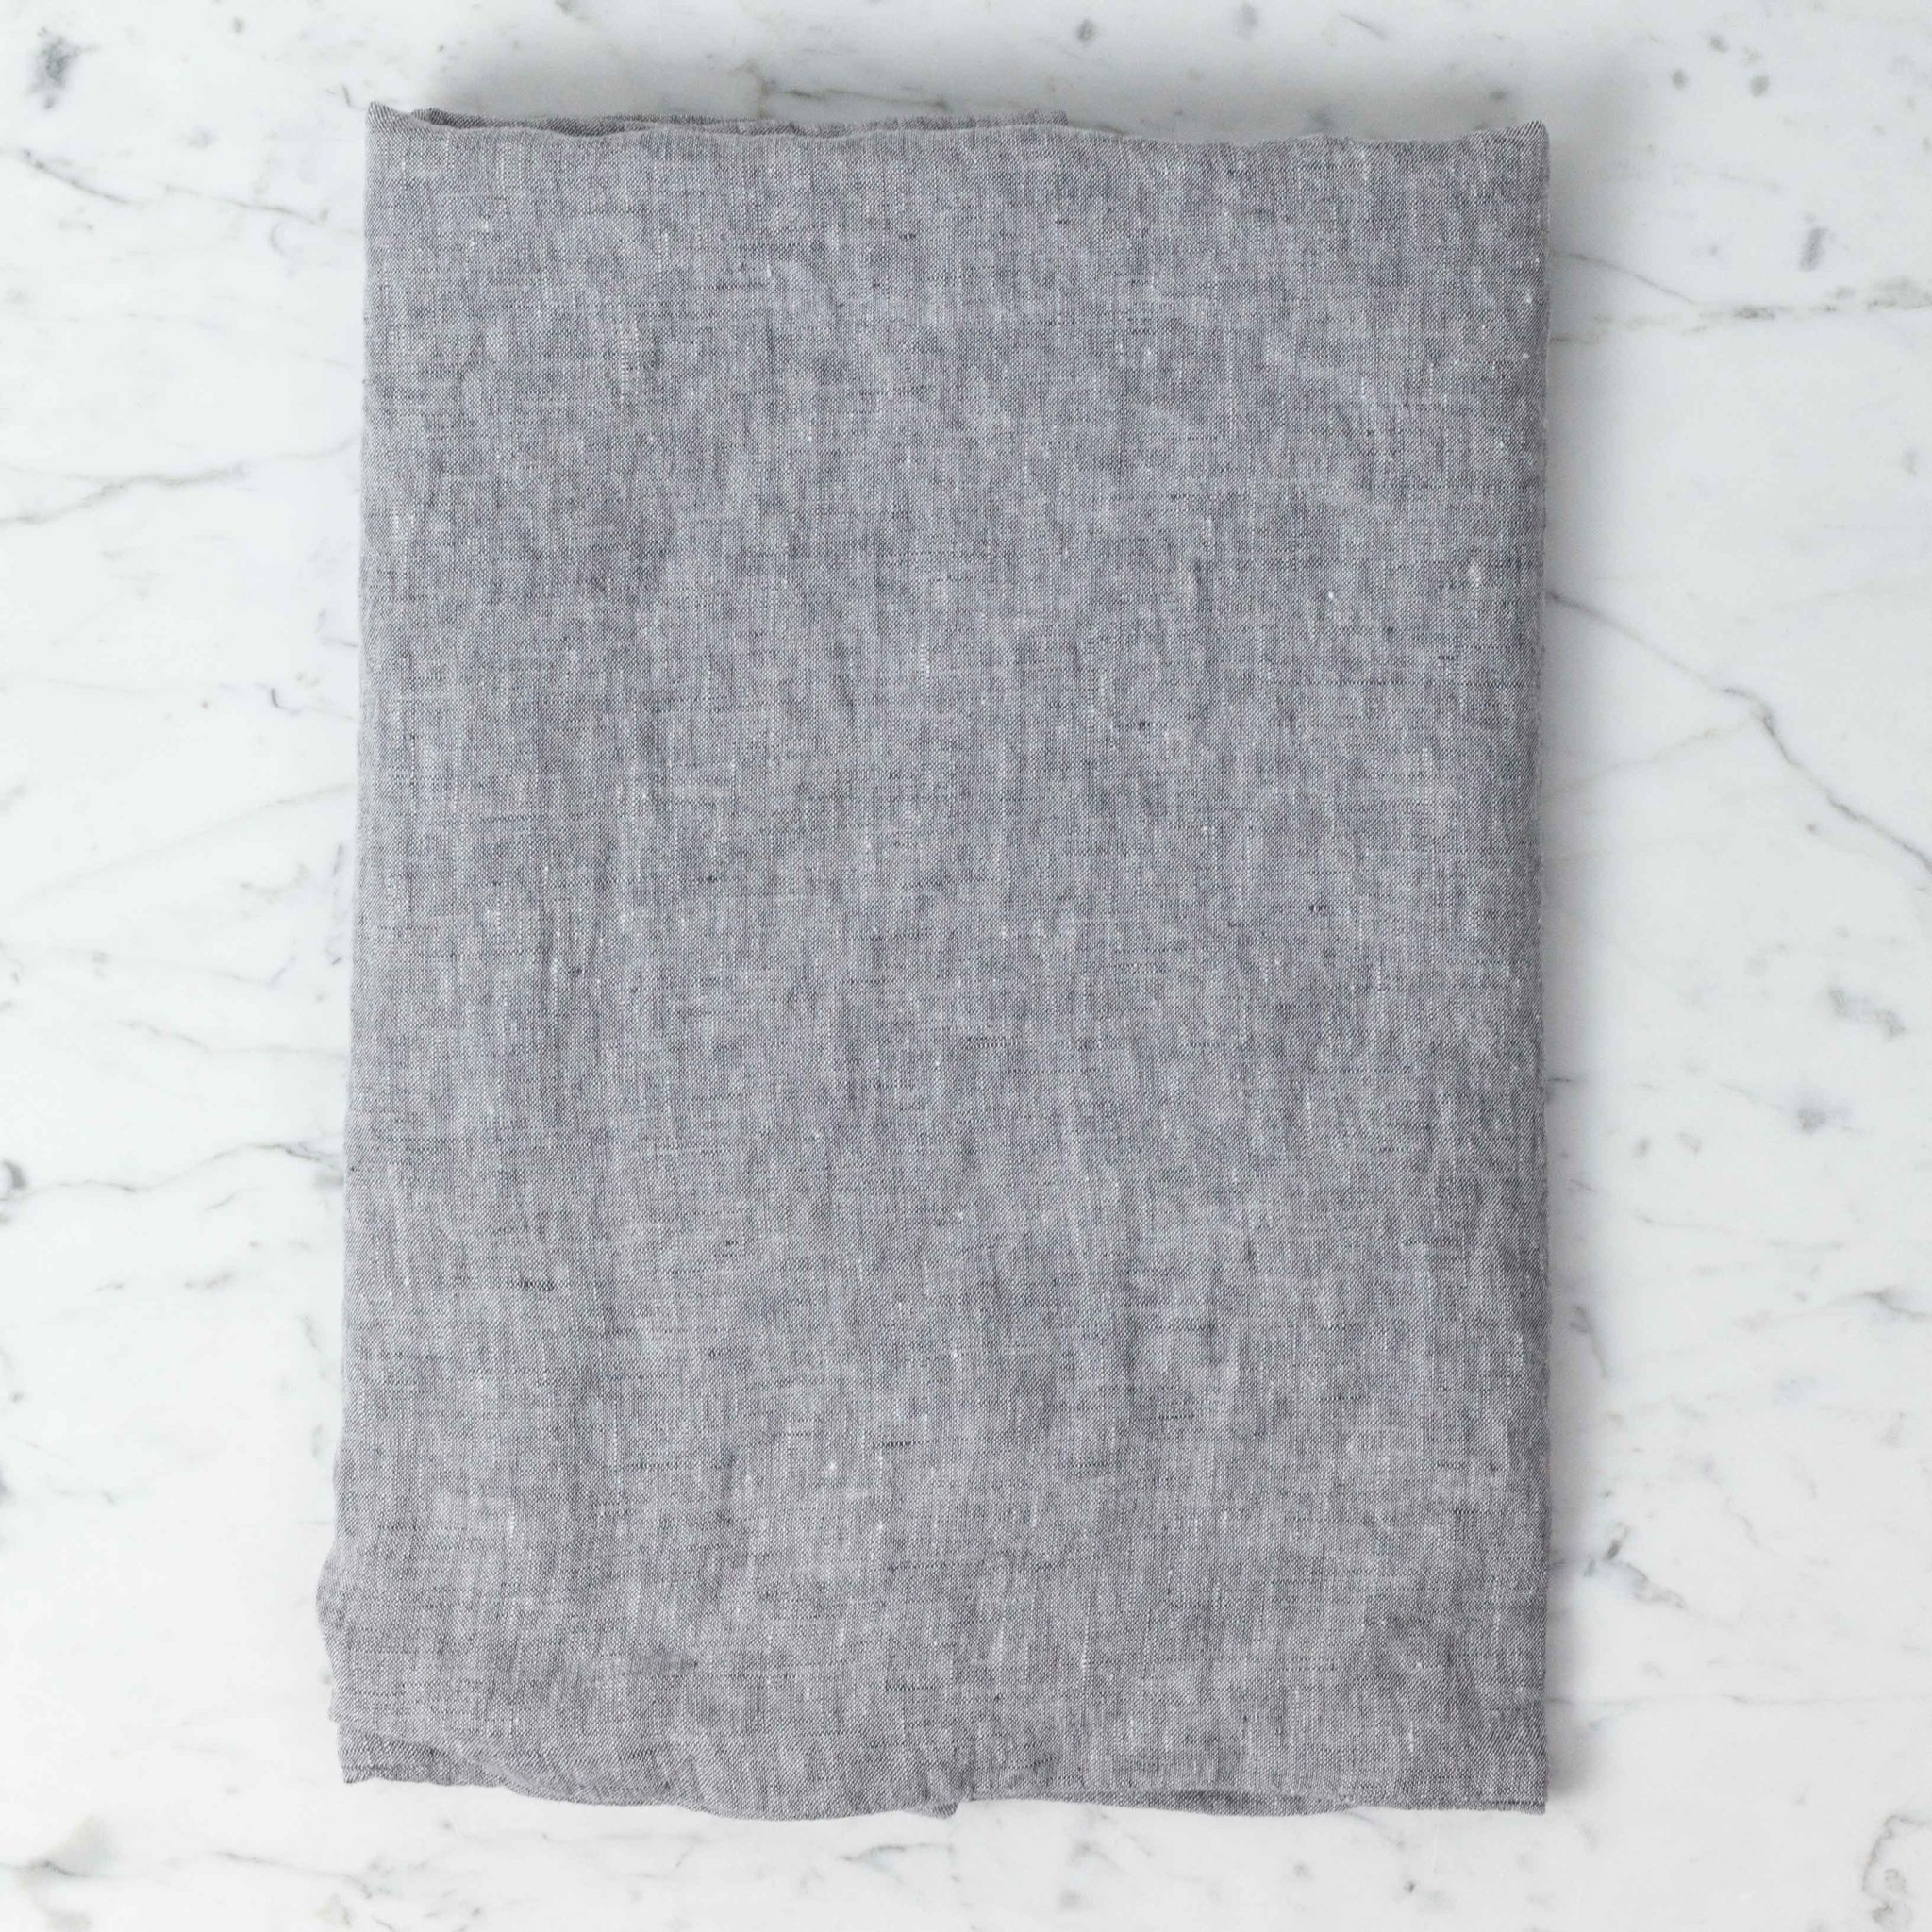 Linge Particulier Washed French Linen Pillow Cover - Grey Chambray - 26 x 26 in